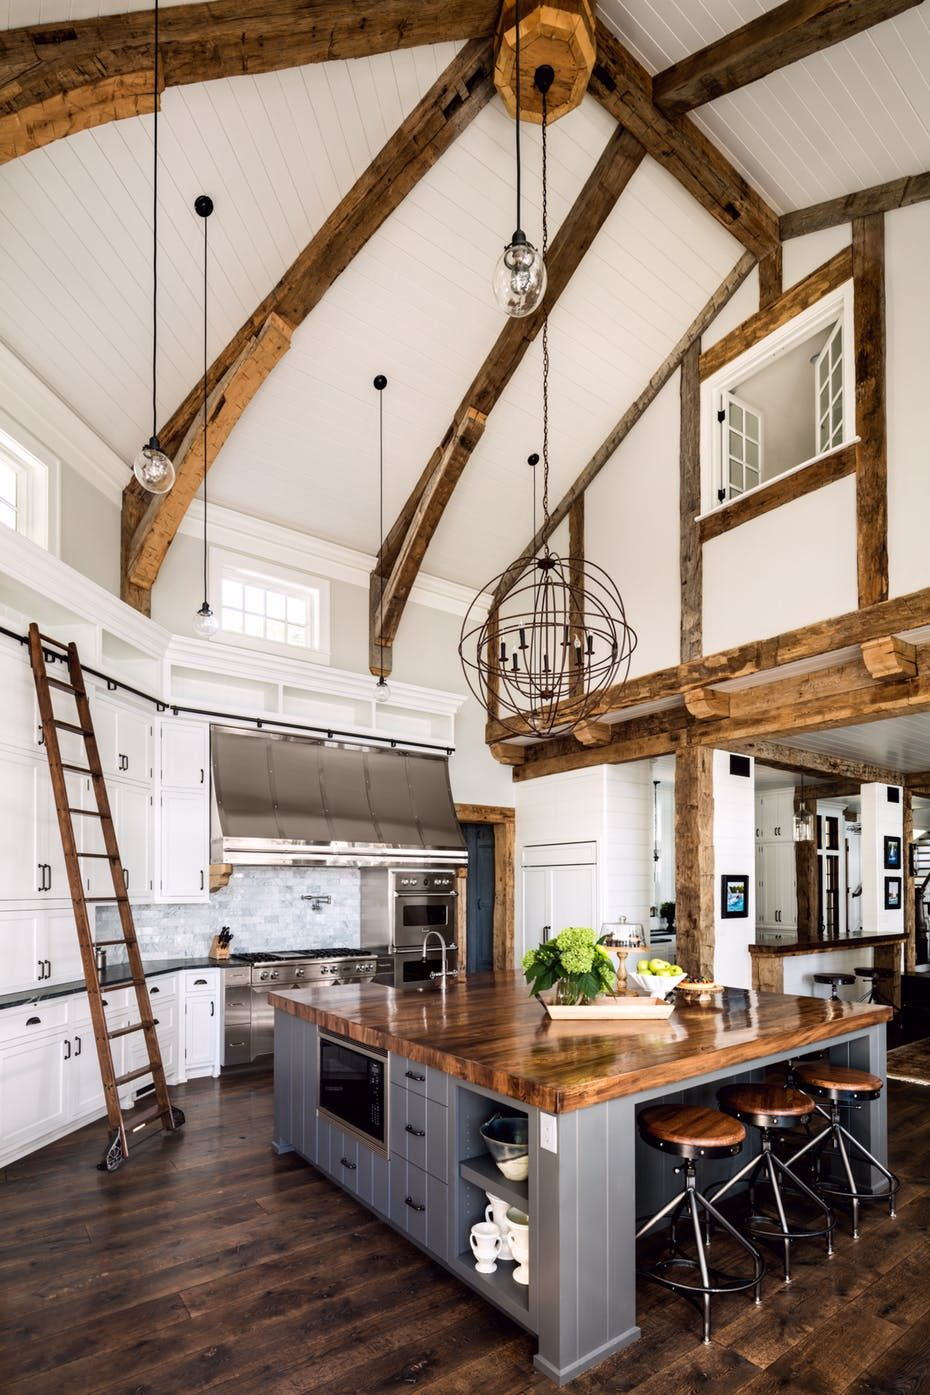 Double Height Shaped Kitchen Ceiling With Heavy Timber Beams By